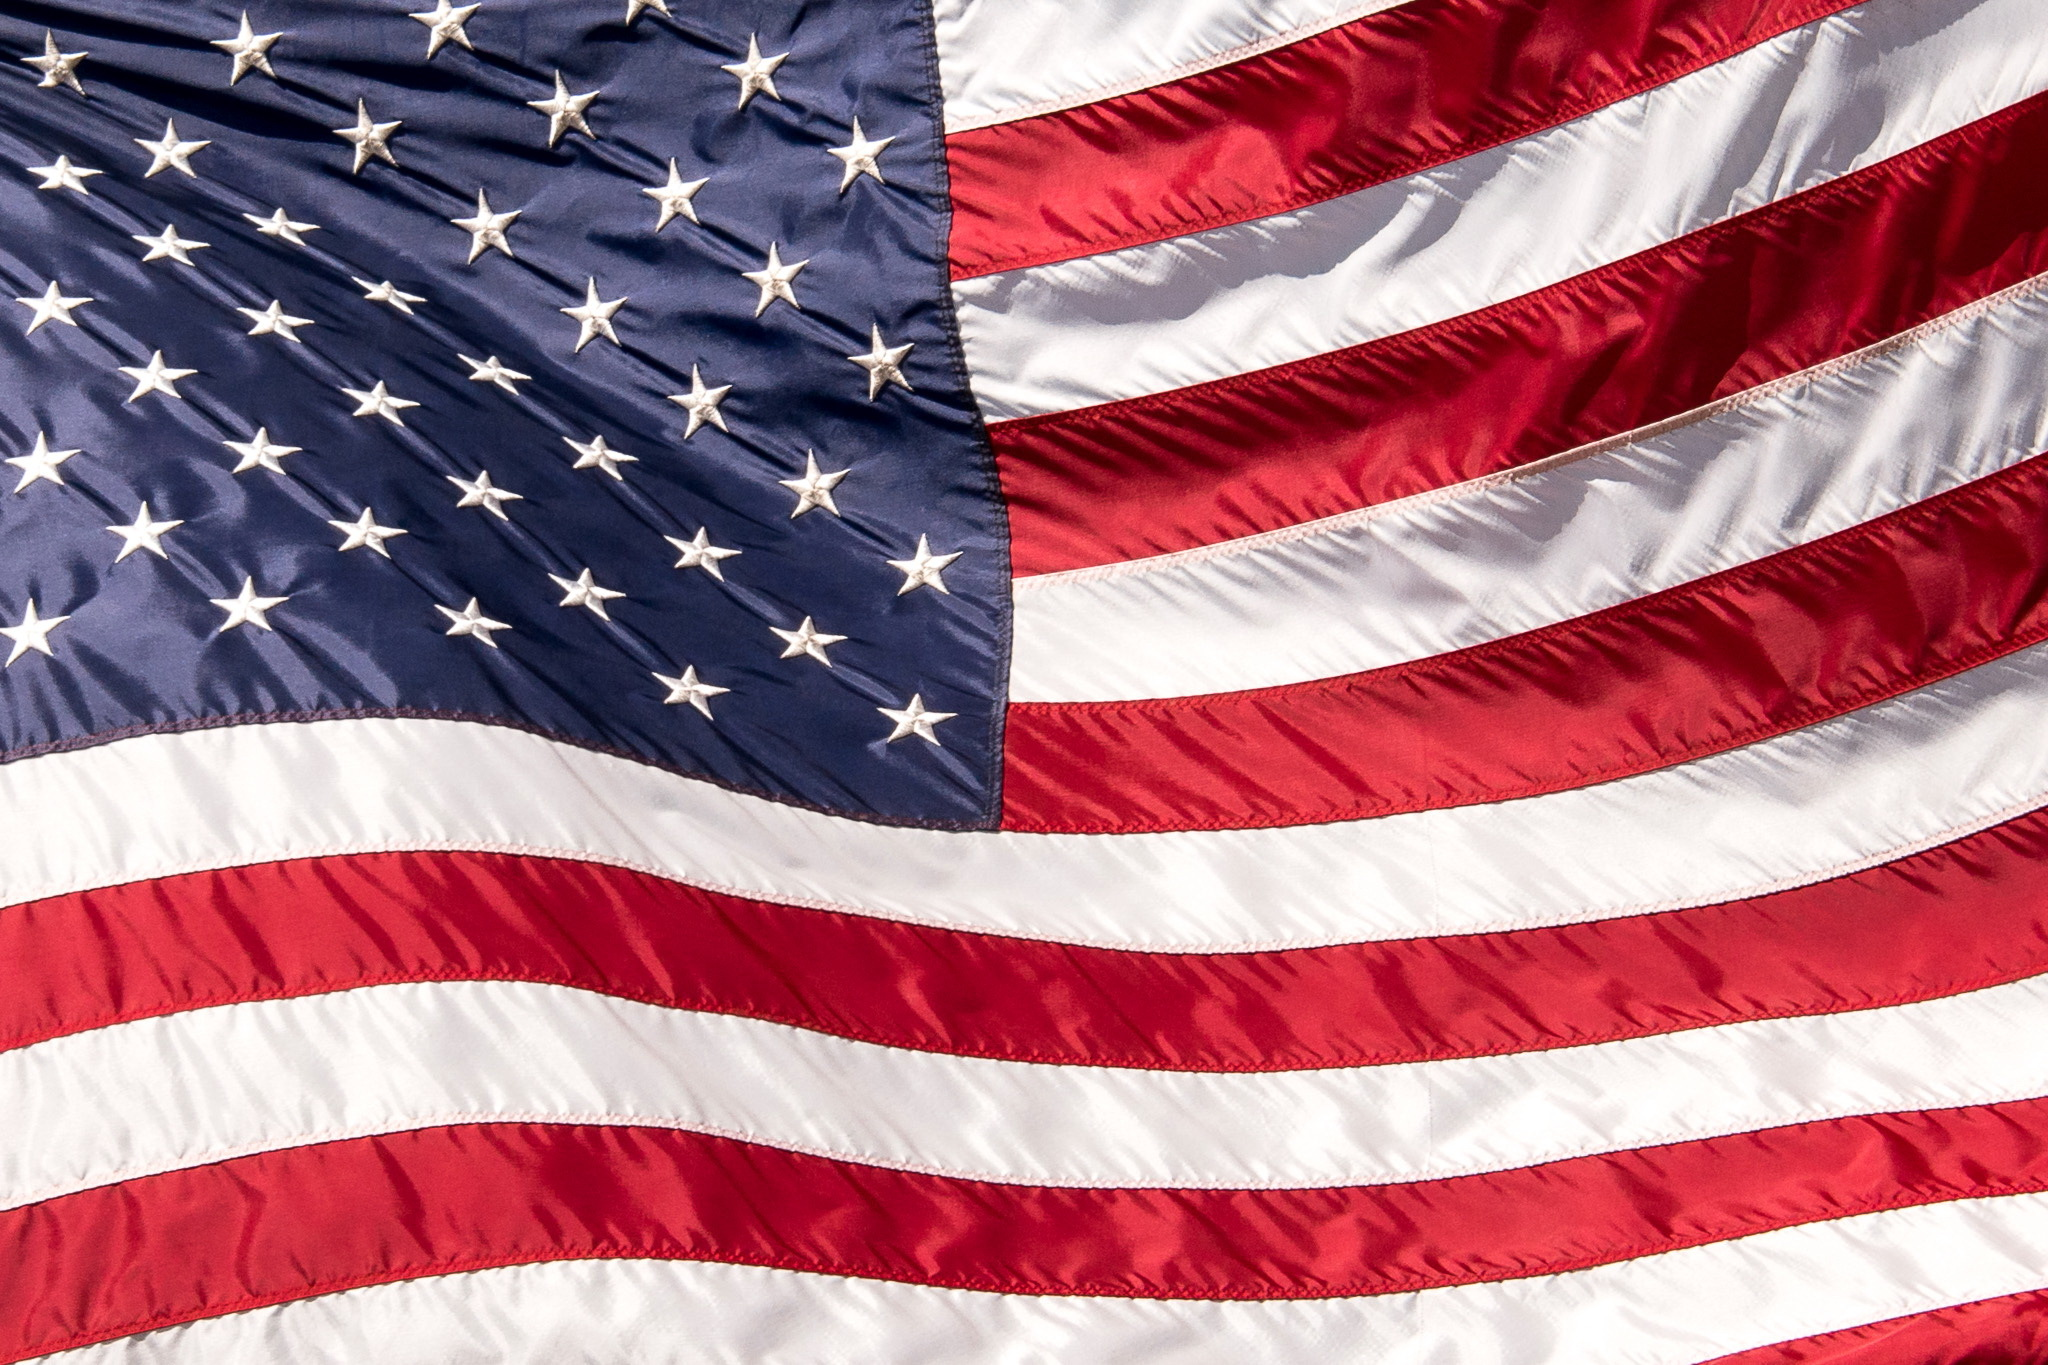 American Flag Hd Wallpaper Background Image 2048x1365